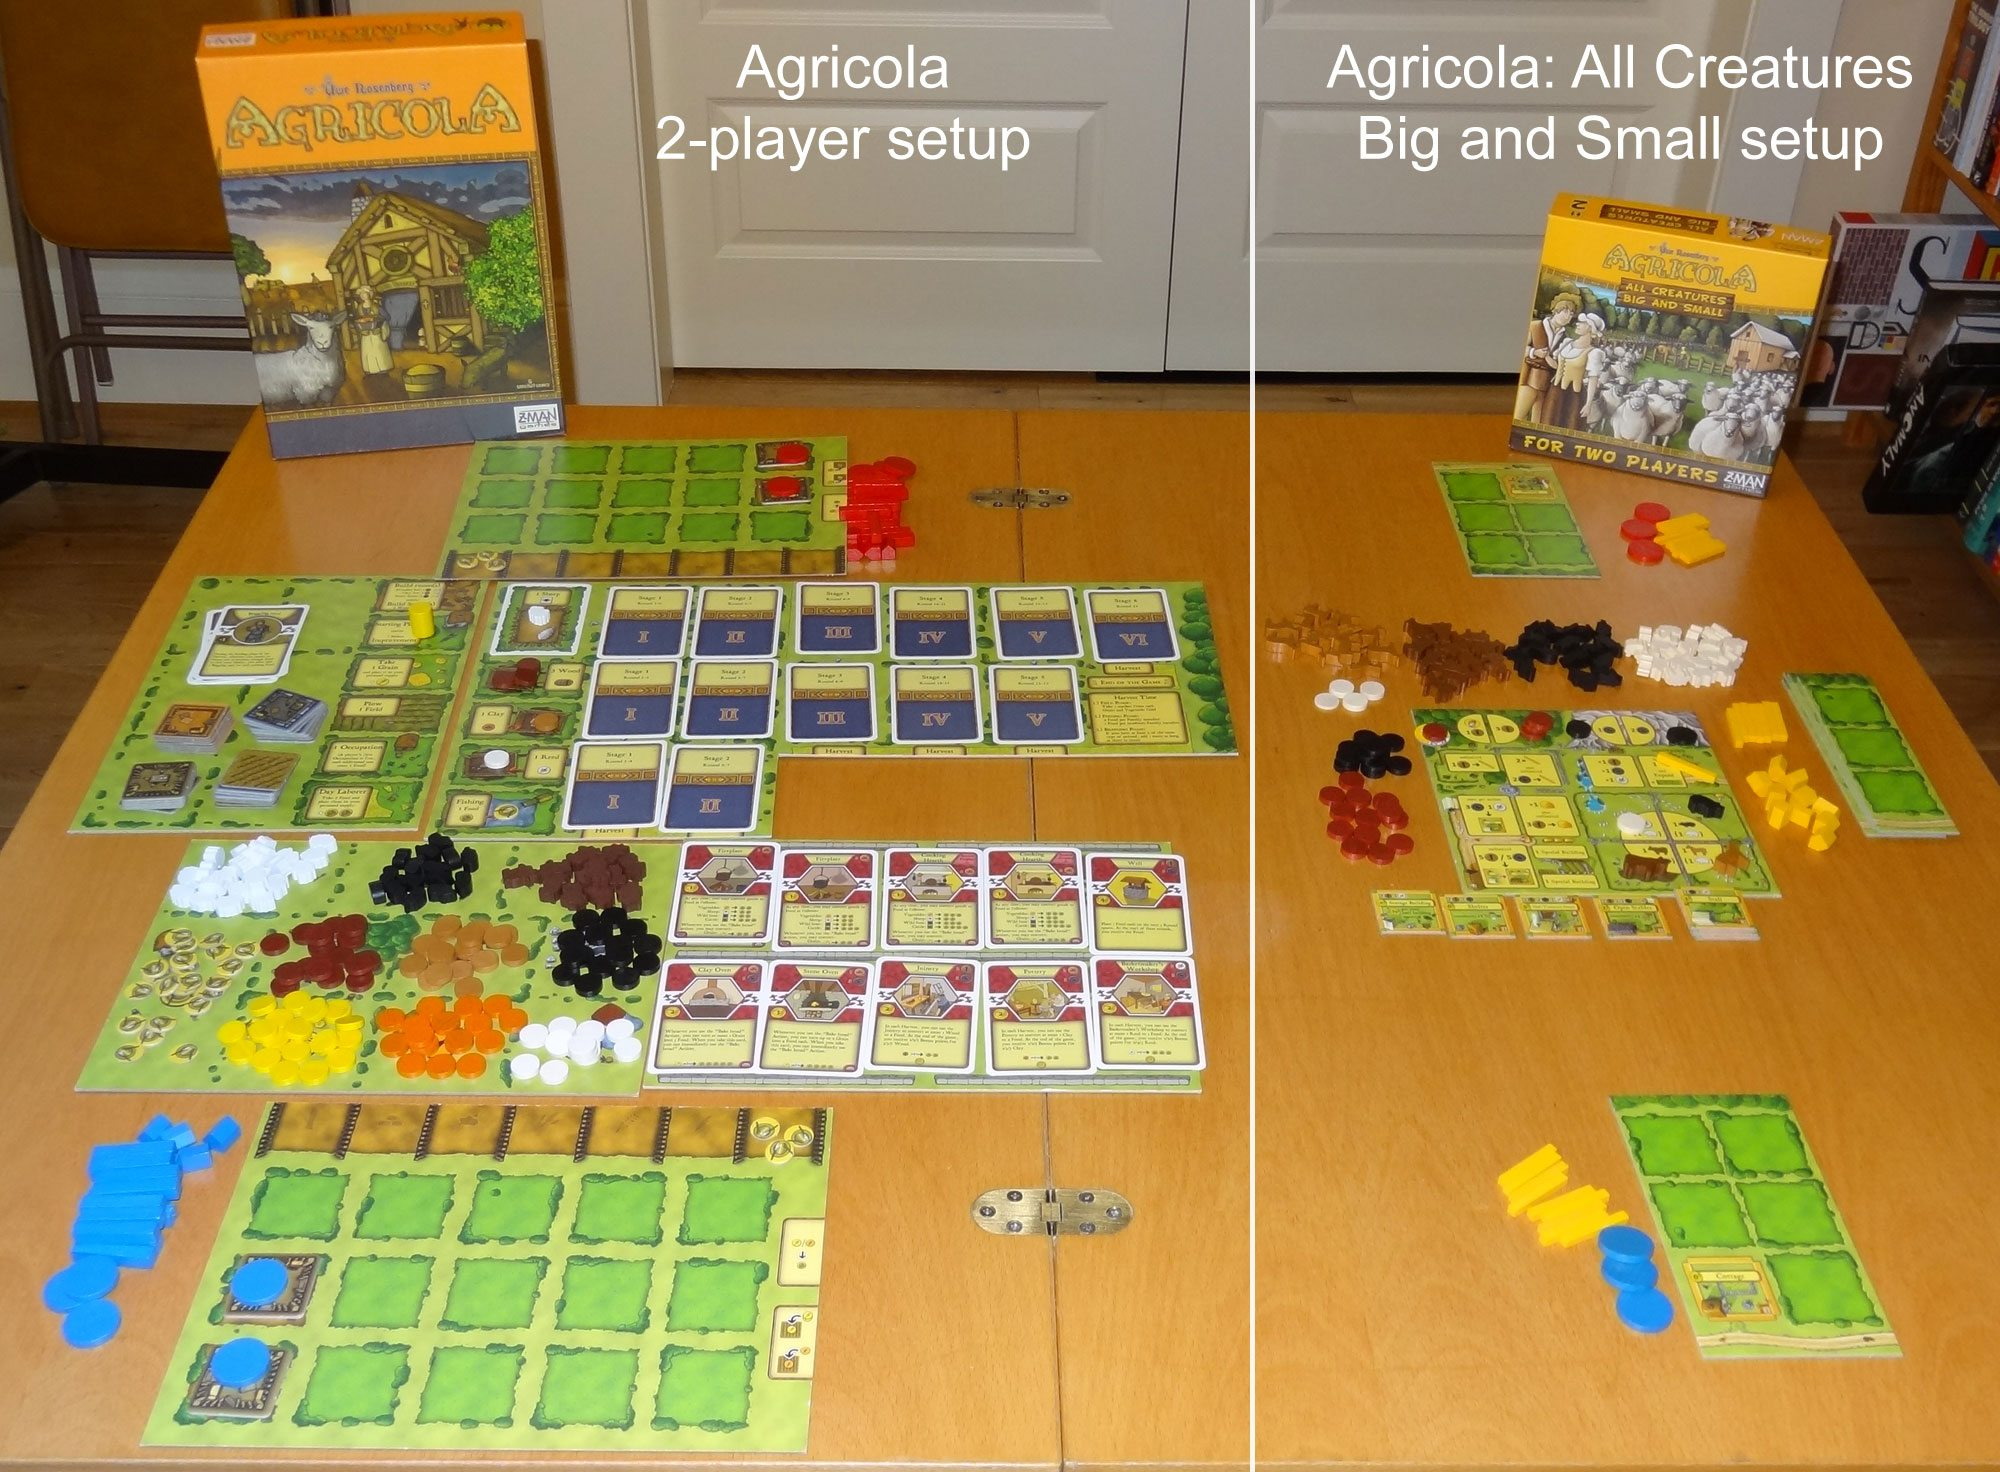 Agricola and All Creatures setup